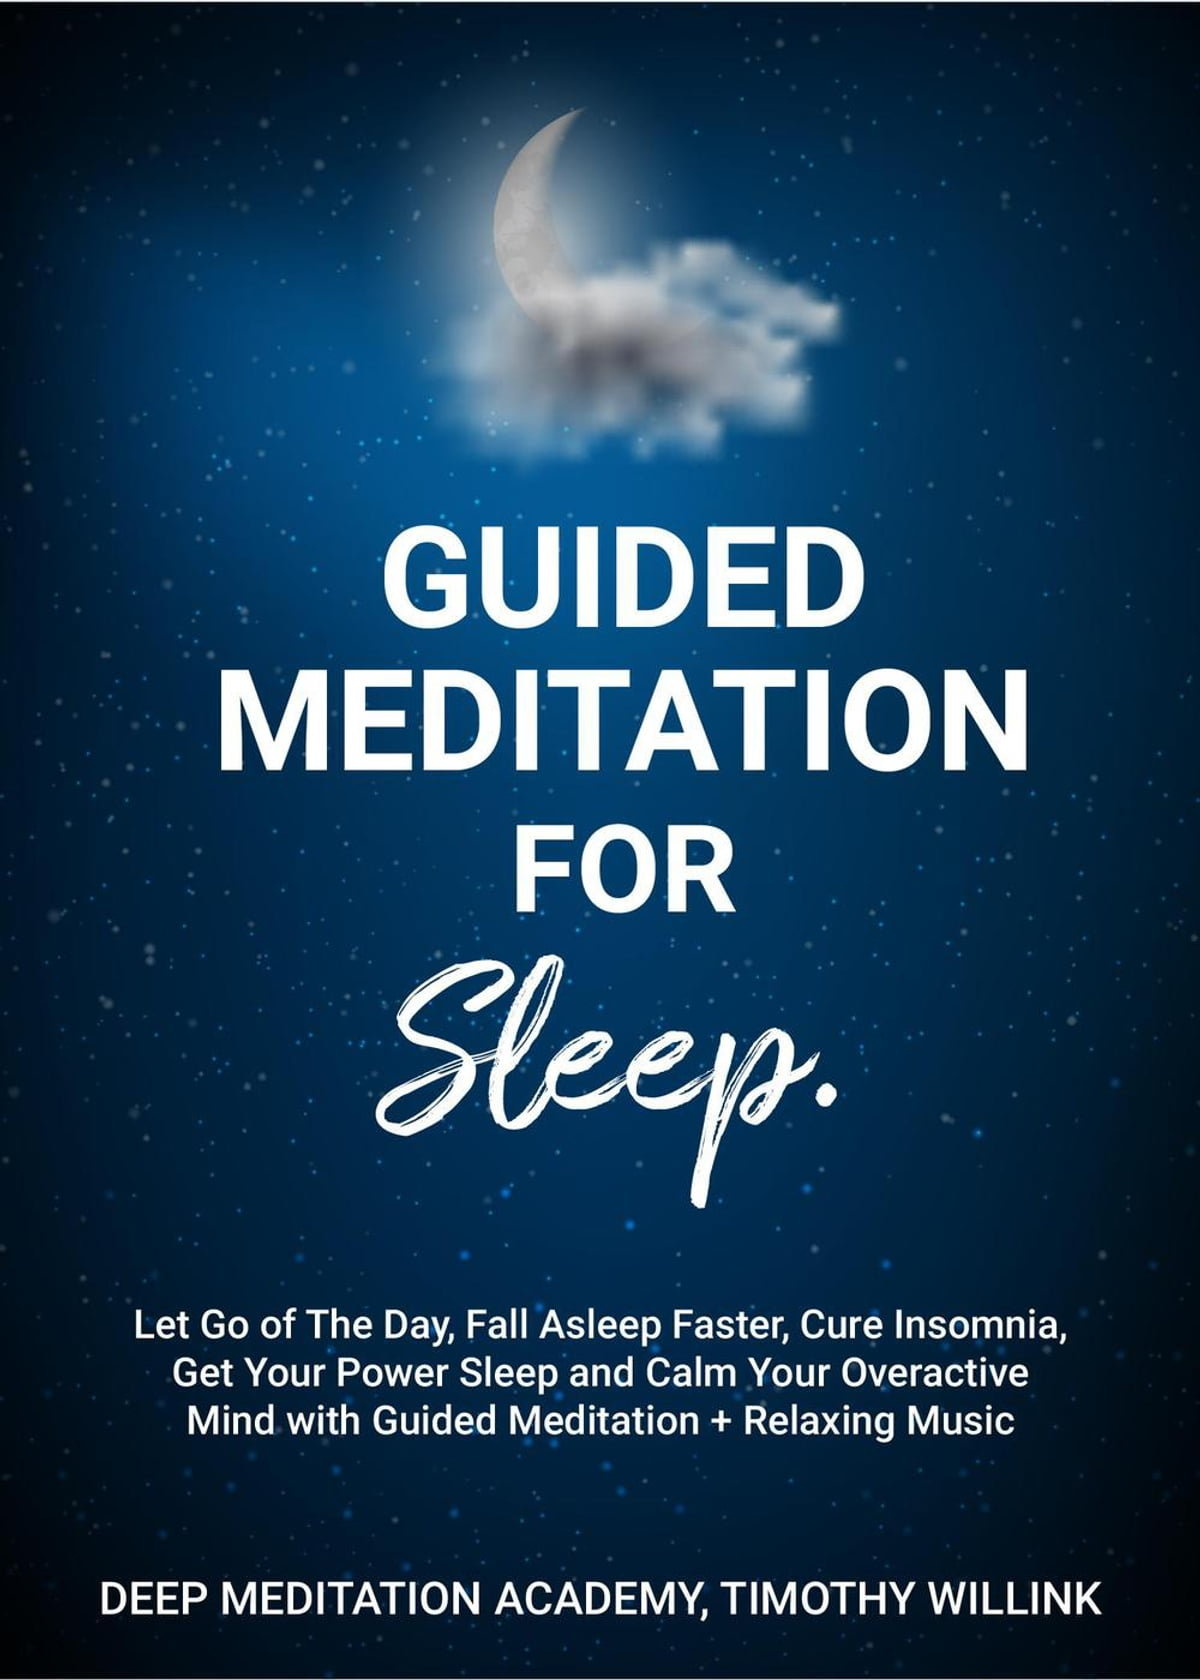 Guided Meditation for Sleep: Let Go of The Day, Fall Asleep Faster, Cure  Insomnia, Get Your Power Sleep and Calm Your Overactive Mind with Guided